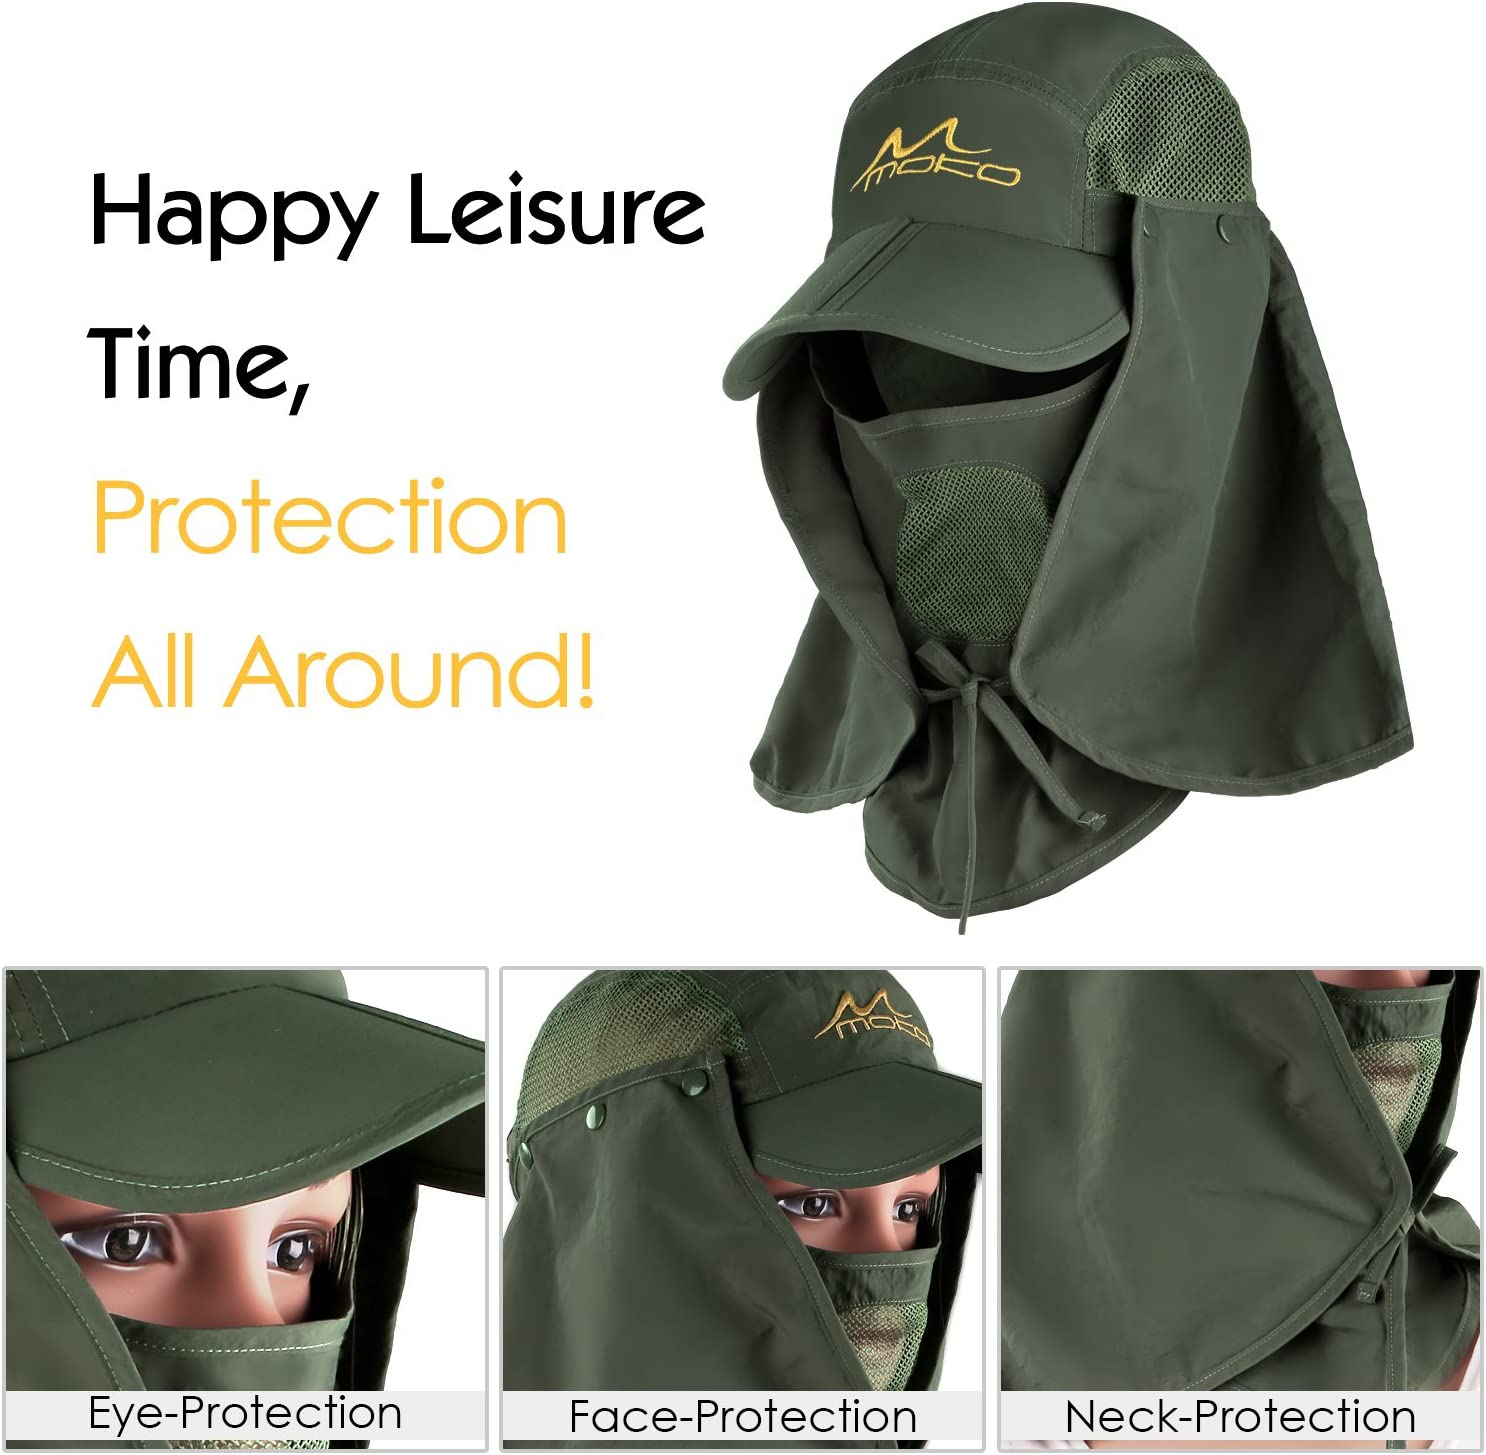 Army Green Camping Gardening Outdoor UPF 50 Sun Protection with Removable Neck Flap /& Face Cover Mask for Hiking MoKo Fishing Hat Sun Cap for Men Women Boating